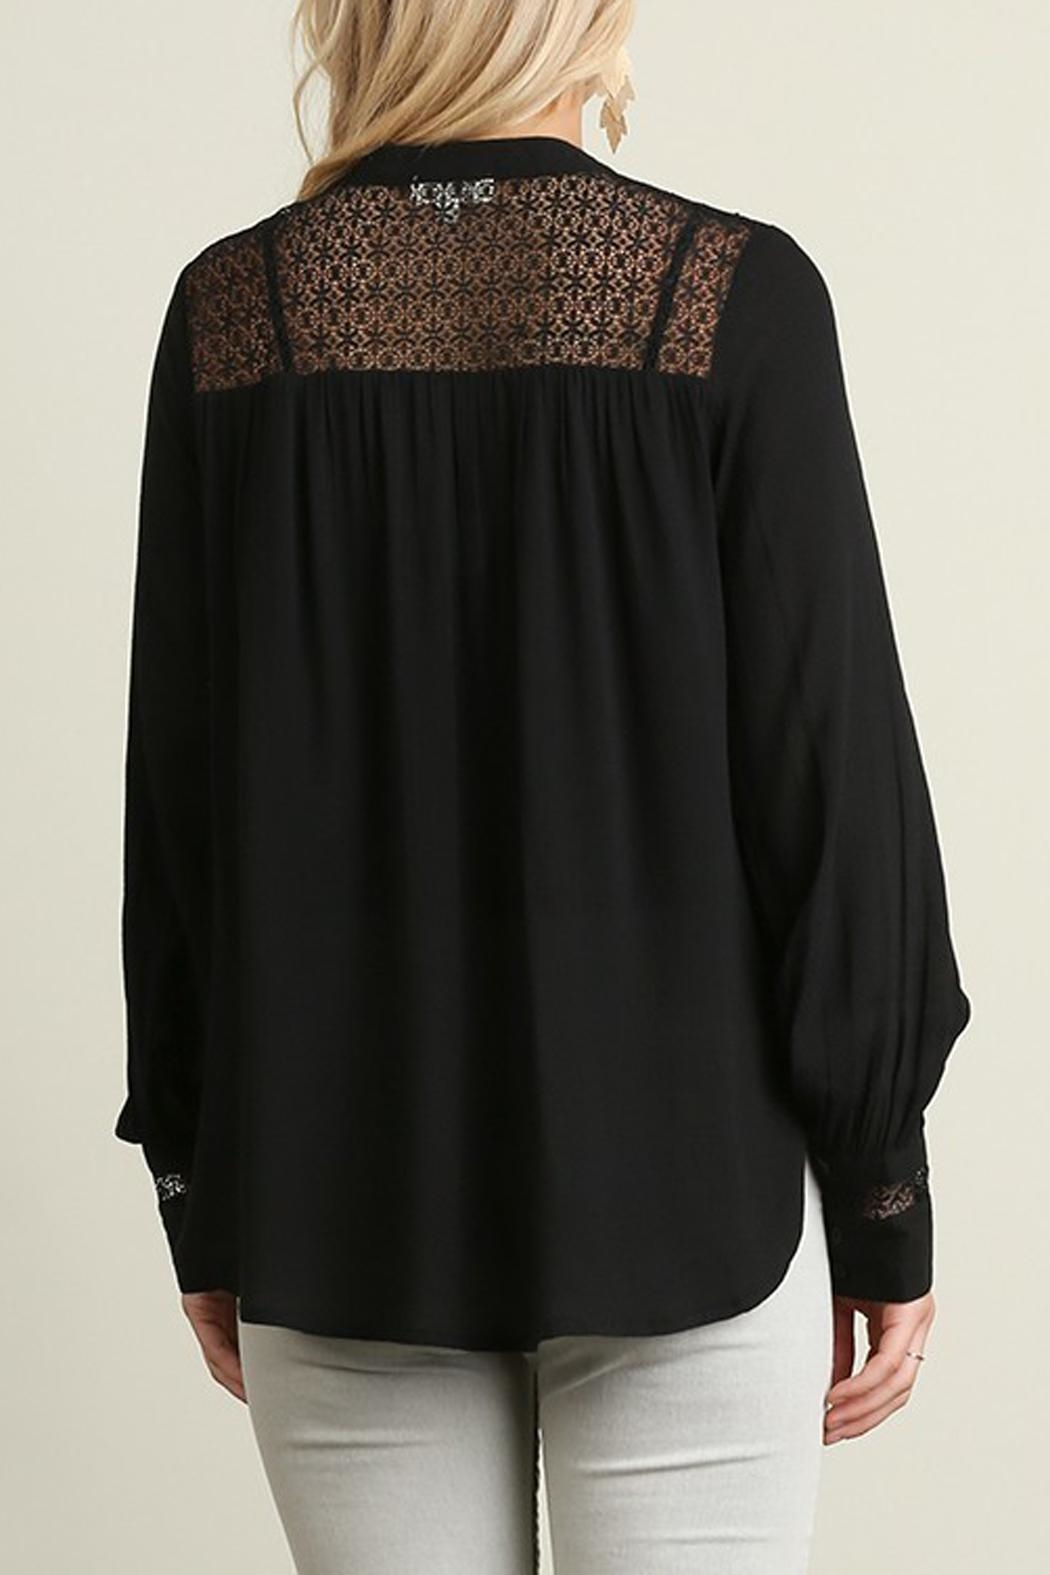 Umgee USA Black Blouse Lace-Detail - Front Full Image